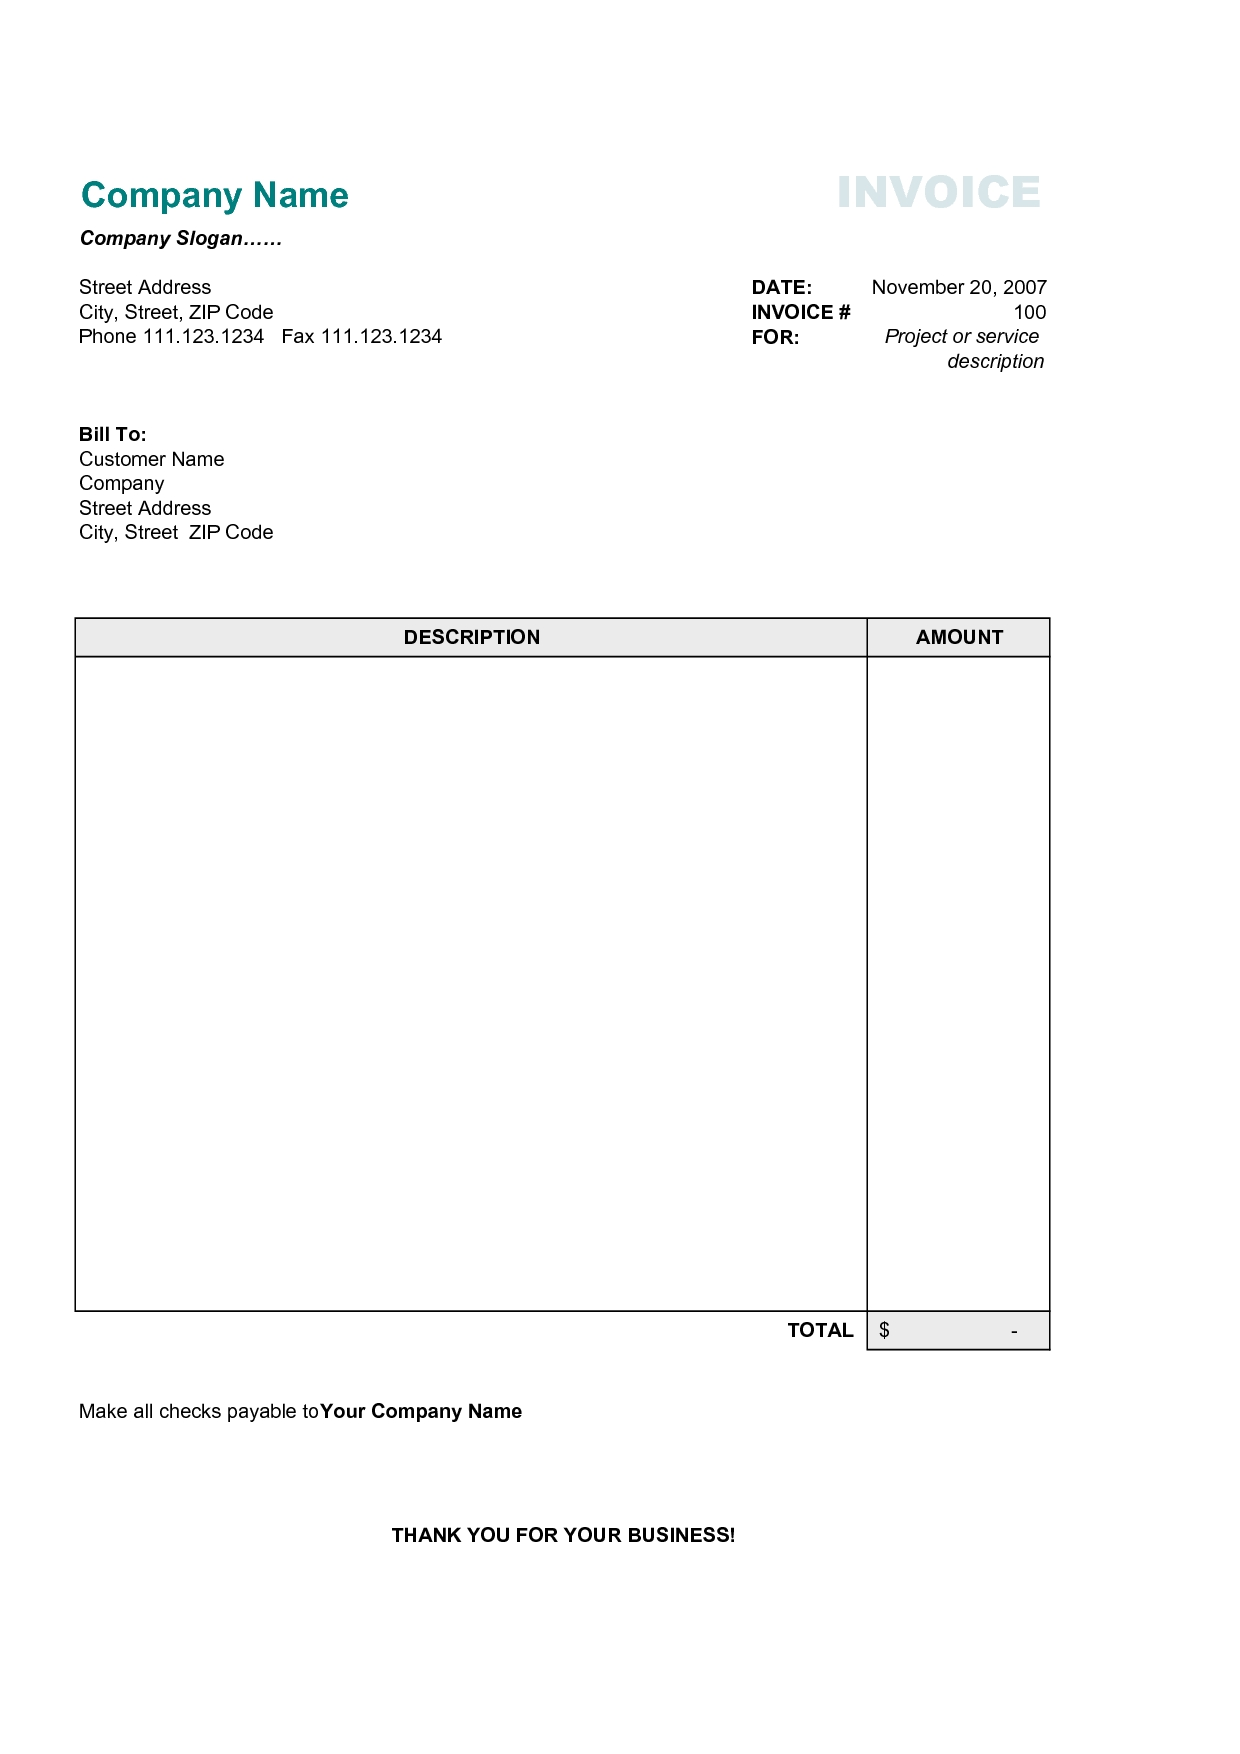 simple invoice template download – notators, Invoice examples